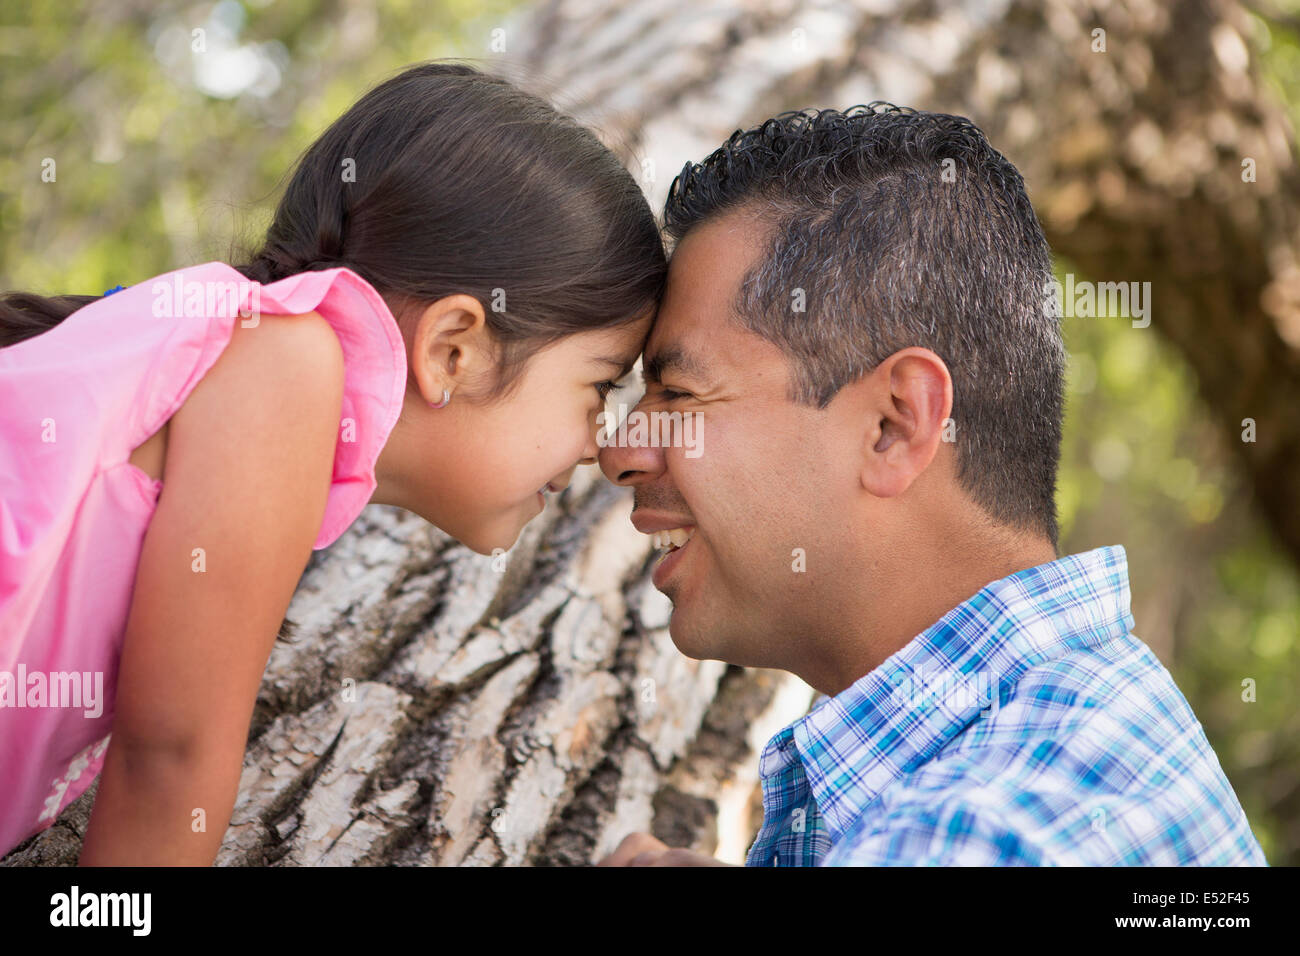 A father and daughter with foreheads pressed together by a tree in the park. - Stock Image